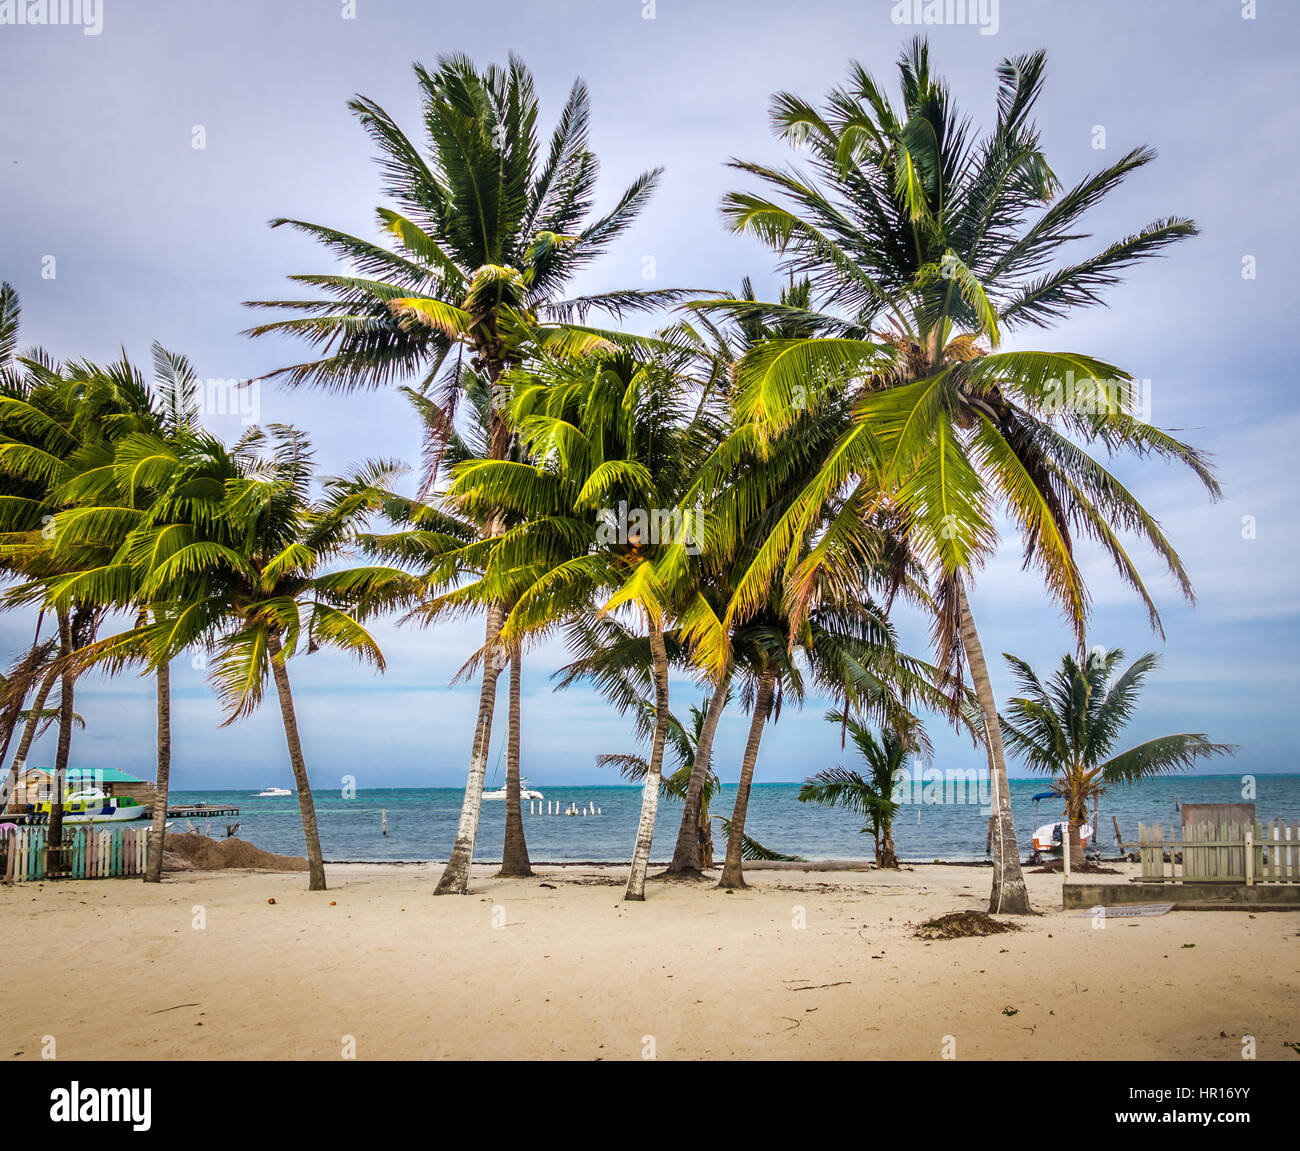 Palm trees in Caye Caulker - Belize - Stock Image